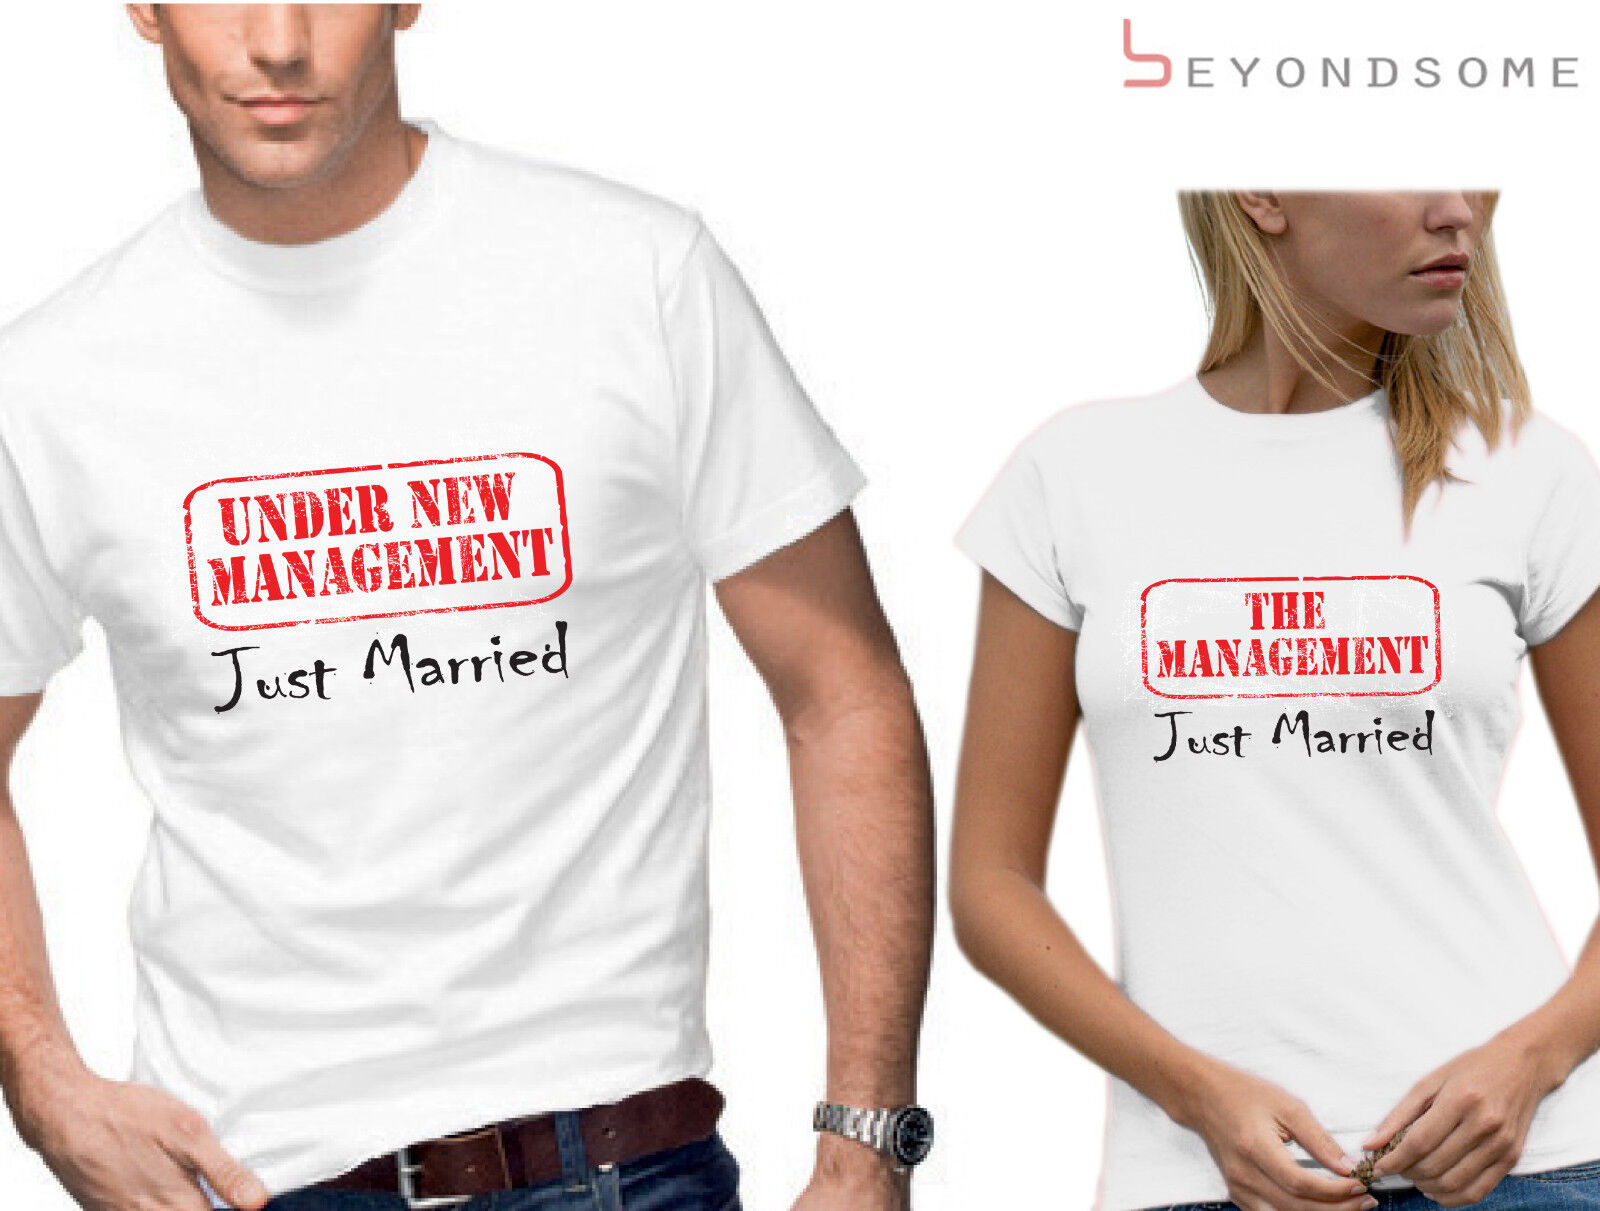 9b70376bb Details about JUST MARRIED UNDER NEW MANAGEMENT T-SHIRT SET FUN WEDDING  TSHIRTS TOPS GIFT